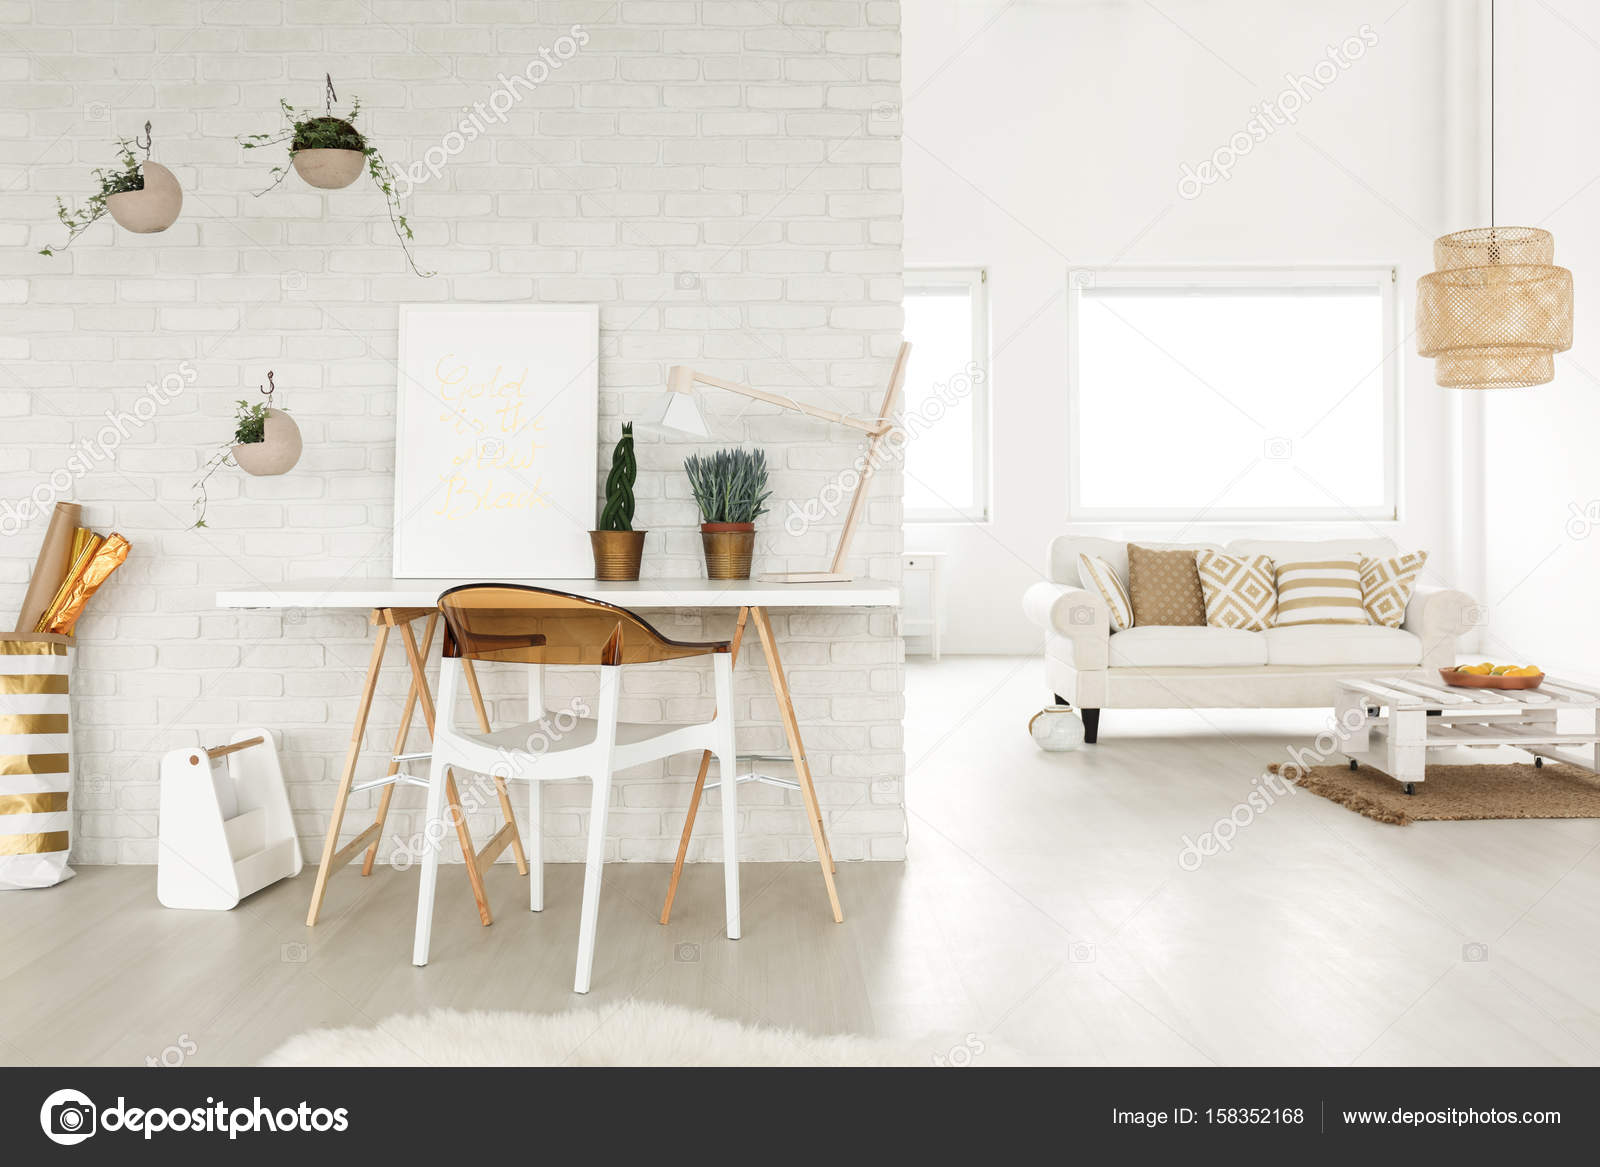 Agreable Creative Atelier In A Loftu2013 Stock Image